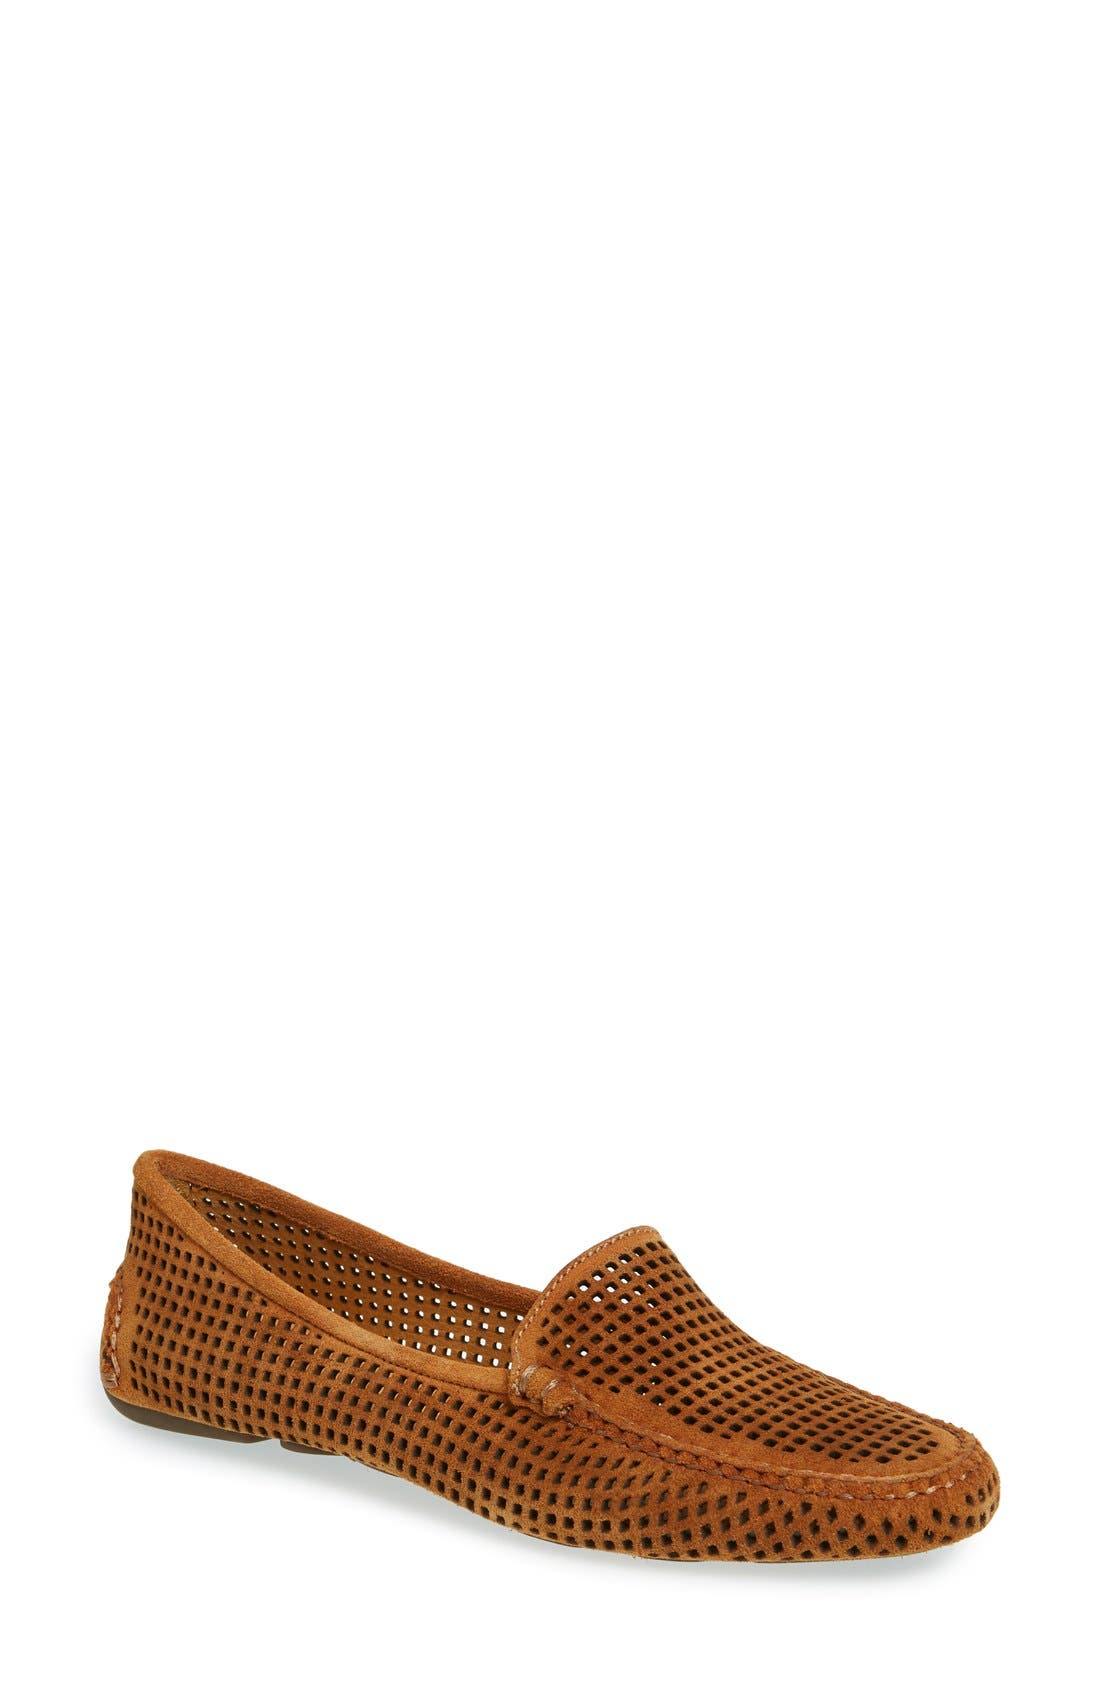 'Barrie' Flat,                         Main,                         color, Camel